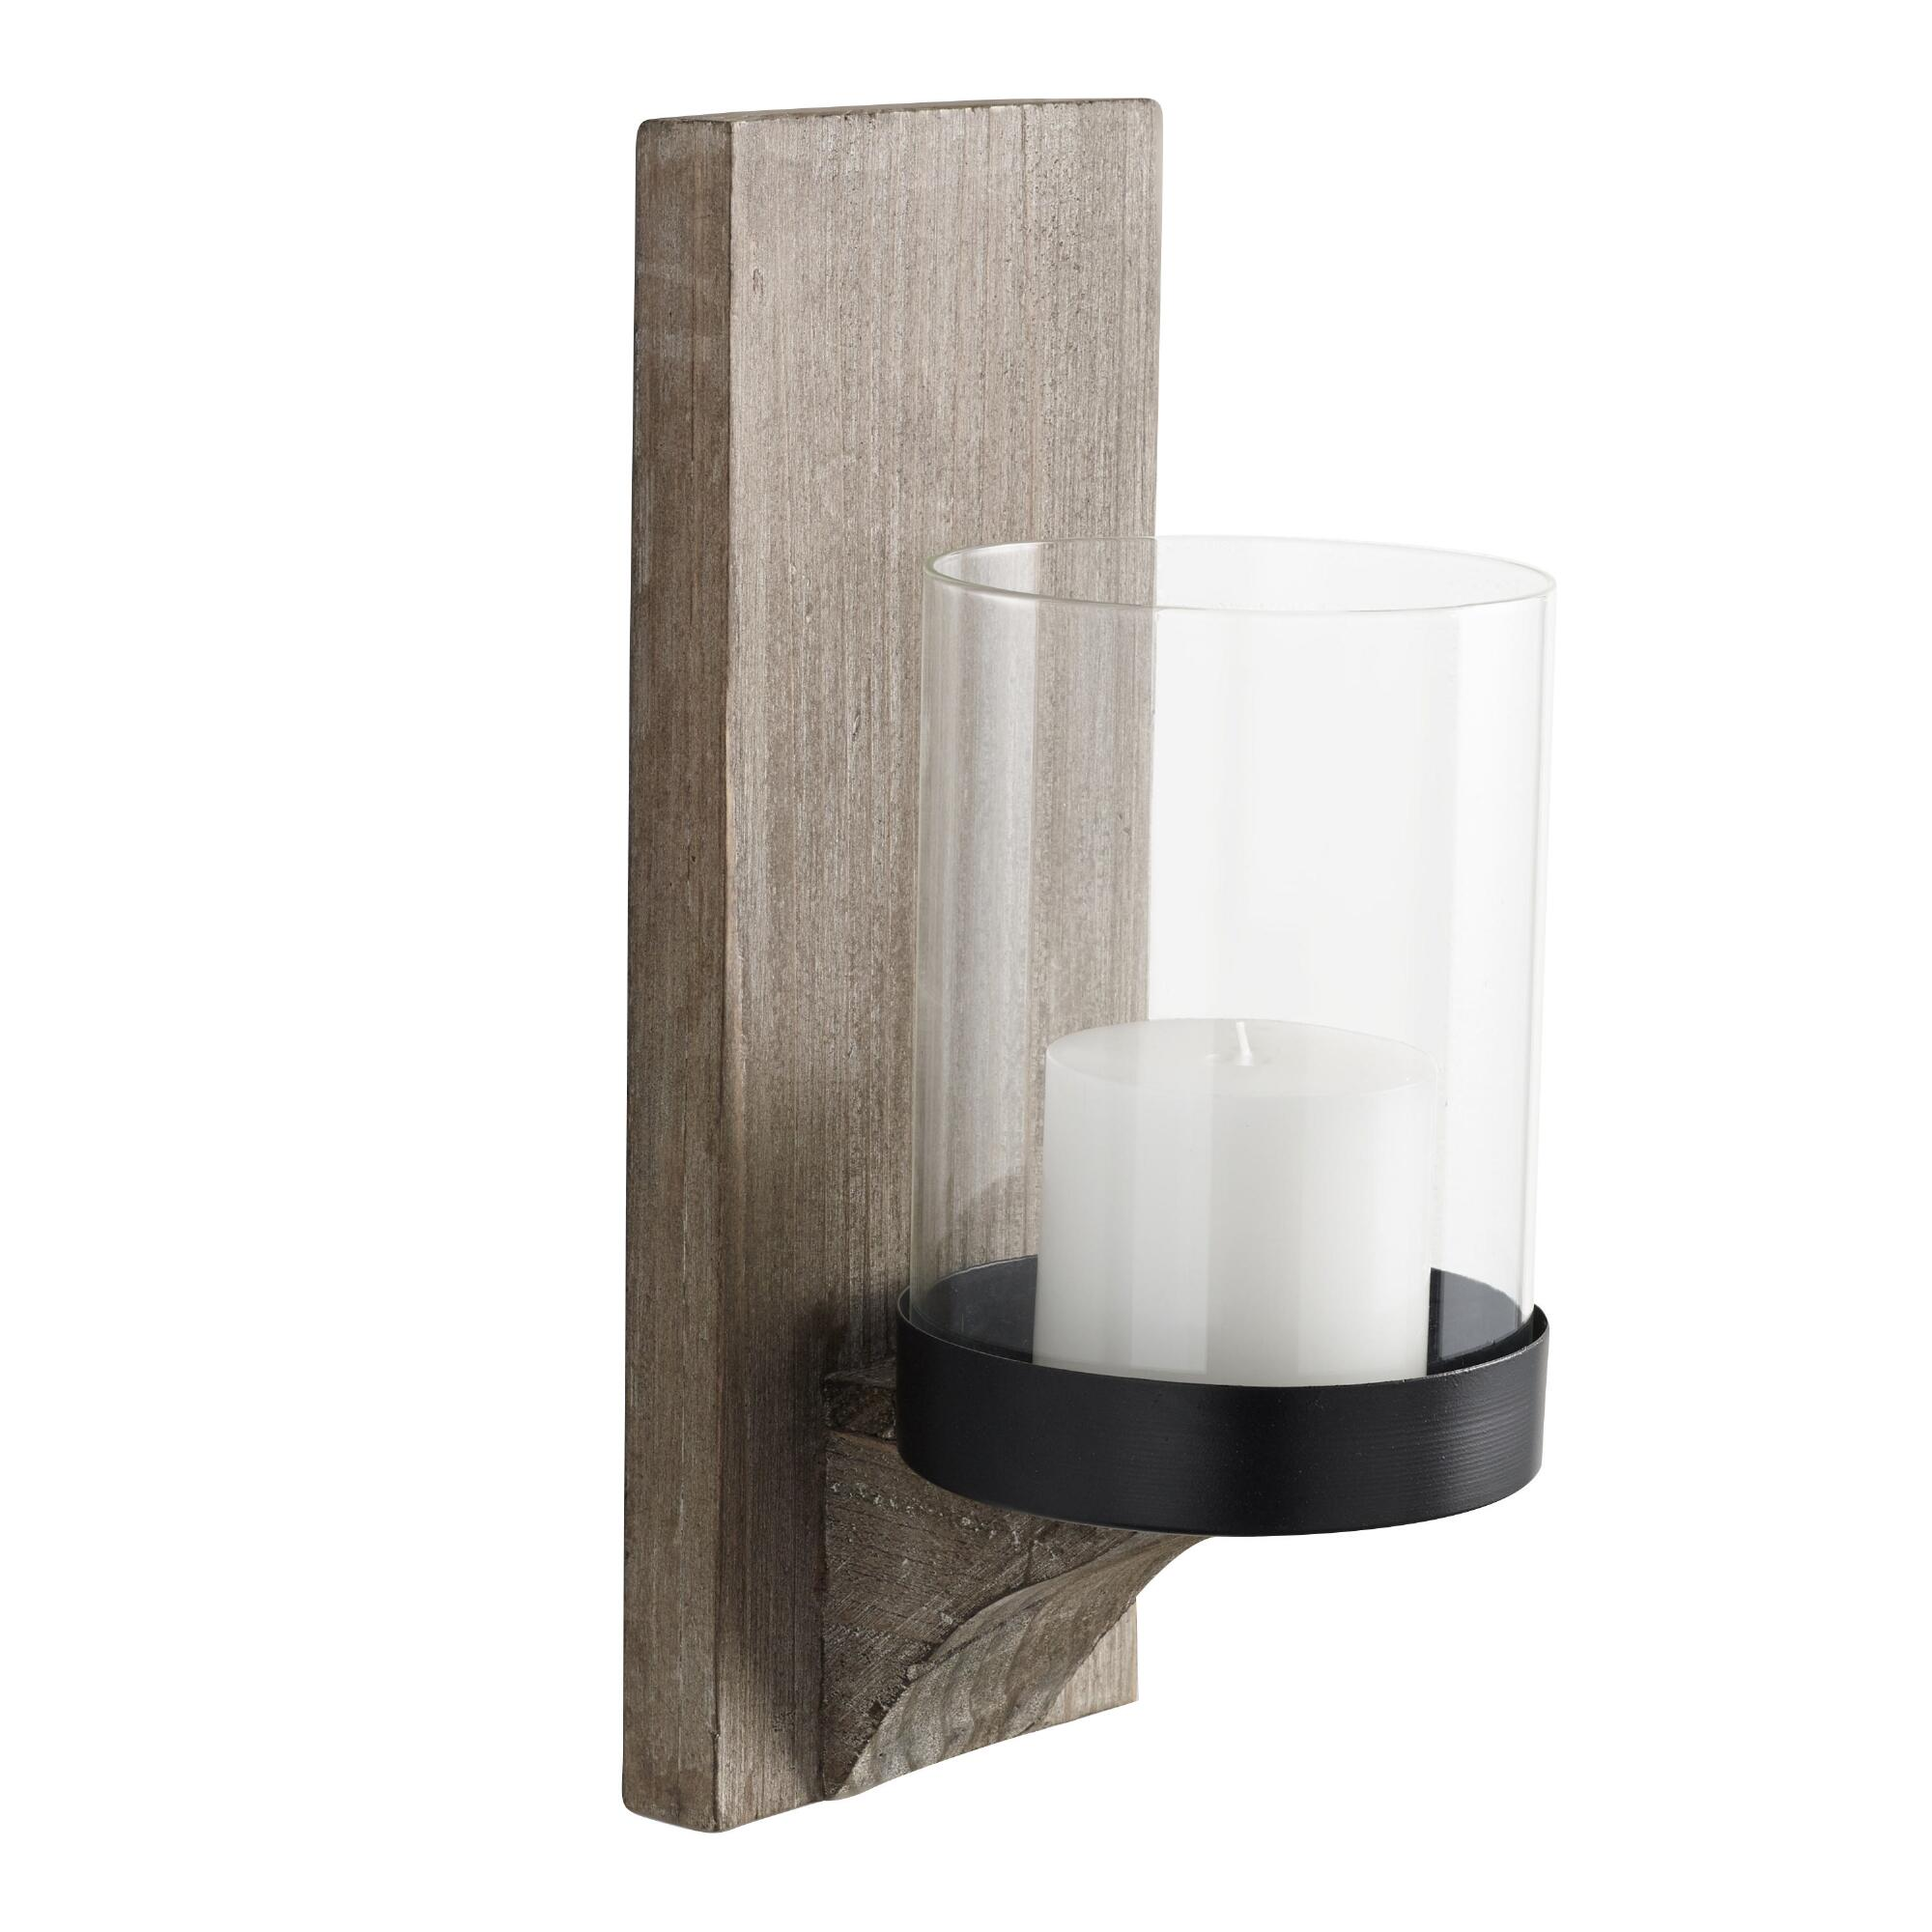 Wall dcor modern wall dcor wall decorations world market rustic wood mason sconce amipublicfo Image collections